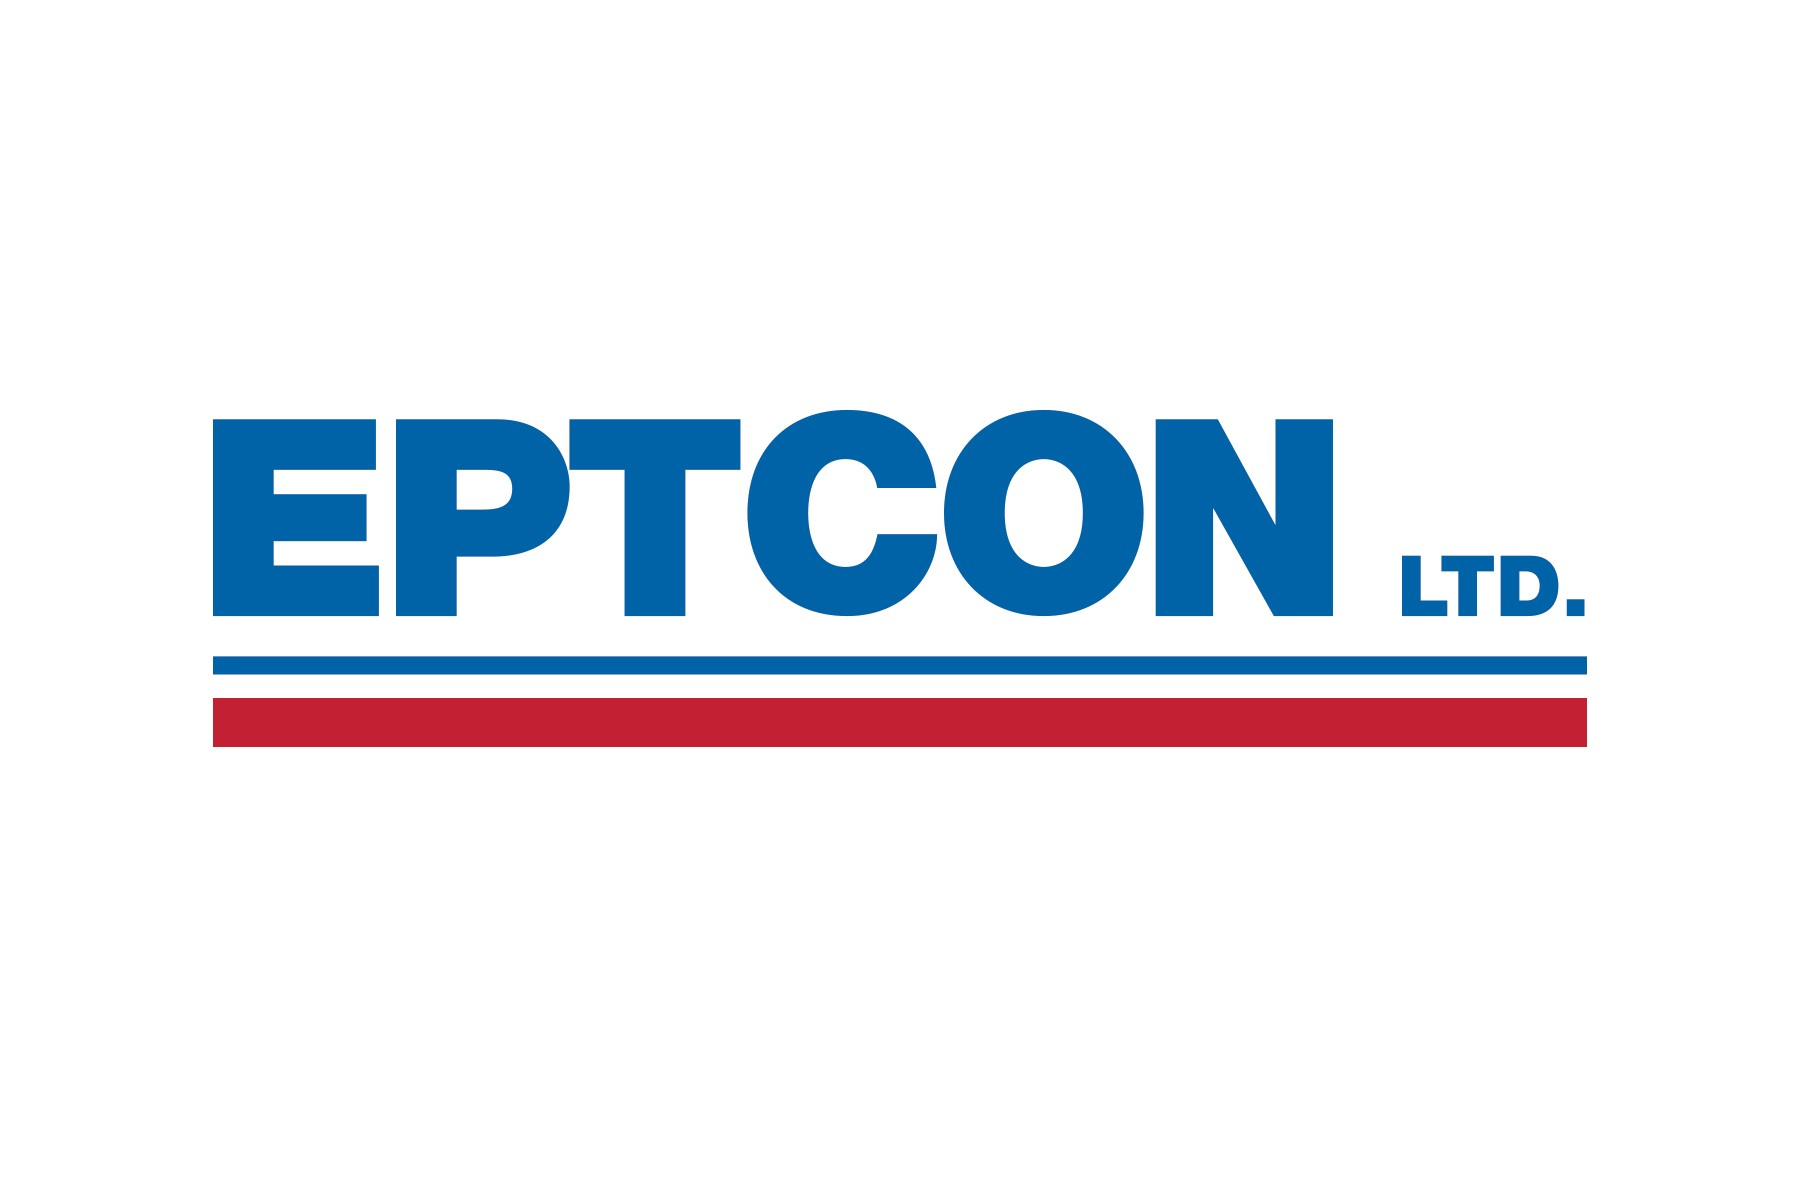 EPTCON Ltd. at Electricity Forum